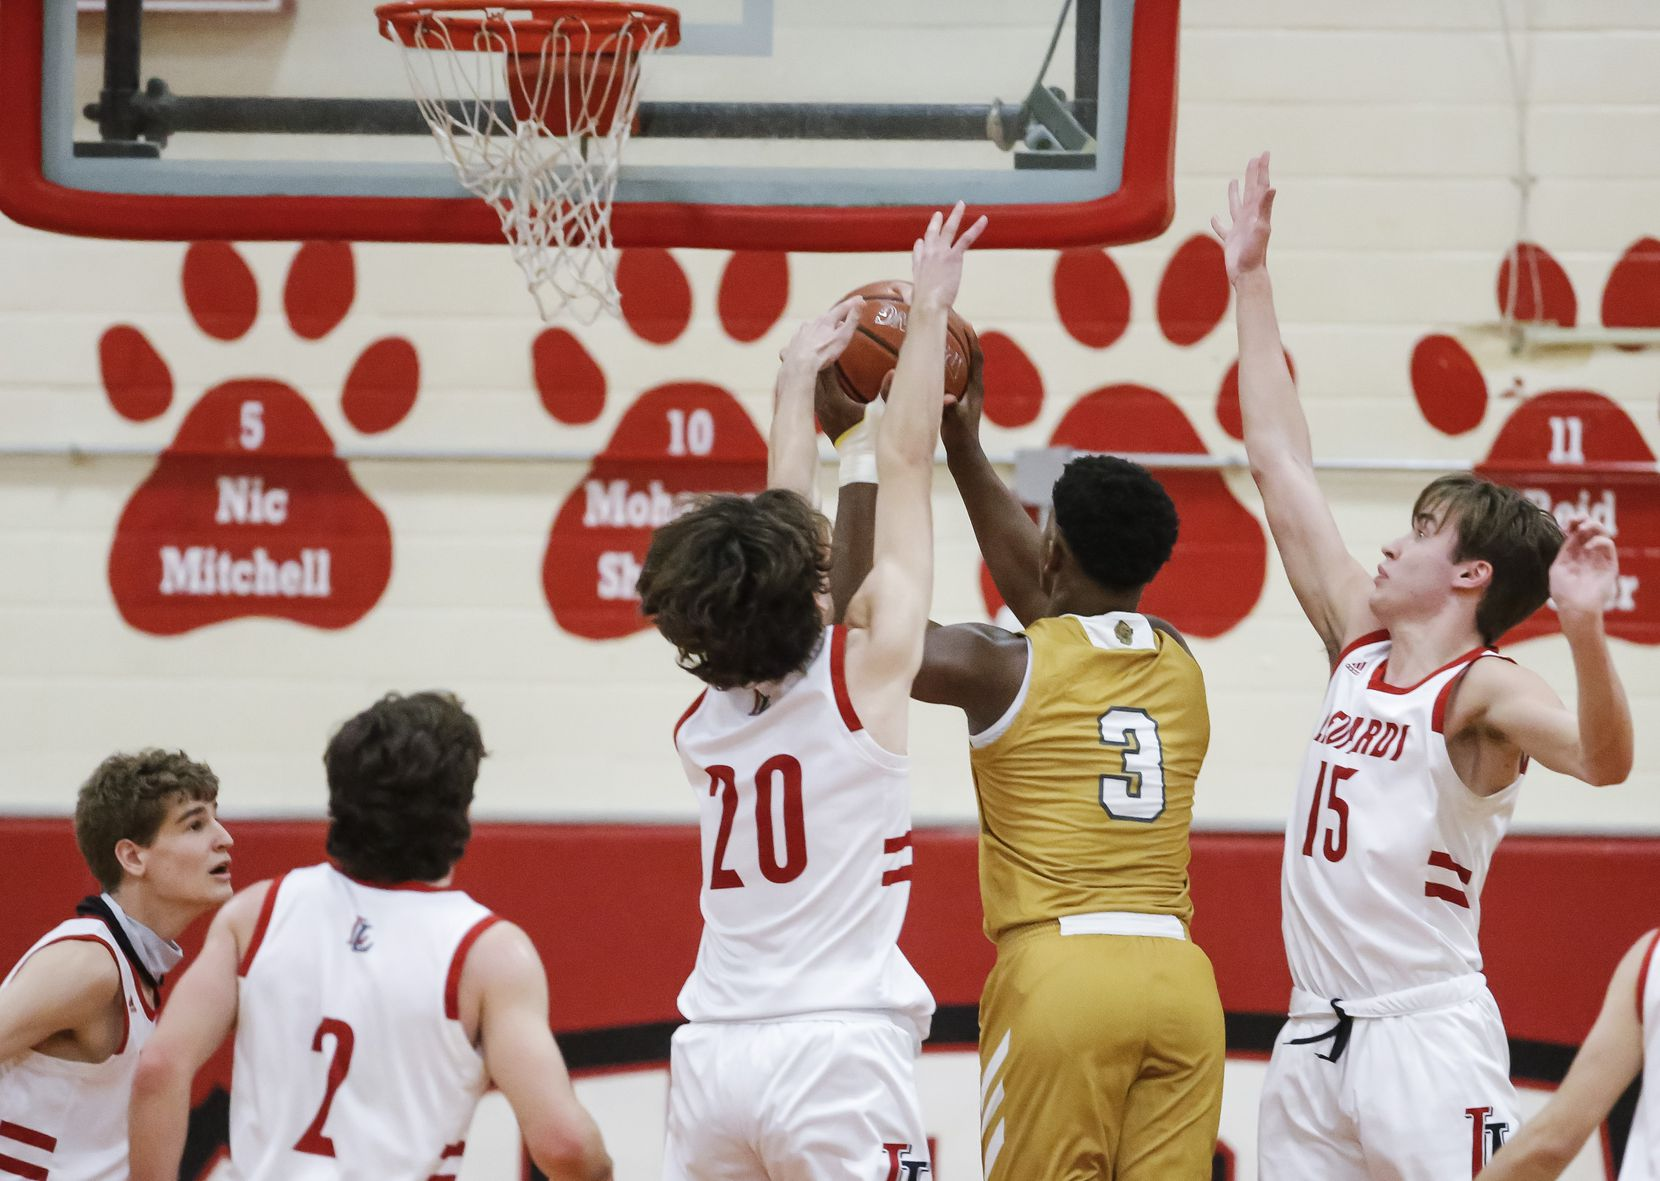 South Oak Cliff senior forward Antonio Patterson (3) attempts a shot as Lovejoy junior forward Pete Peabody (20) and senior forward Sean Calhoun (15) defend during the first half of a Class 5A area-round playoff basketball game at Lake Highlands High School in Dallas, Wednesday, February 24, 2021. (Brandon Wade/Special Contributor)